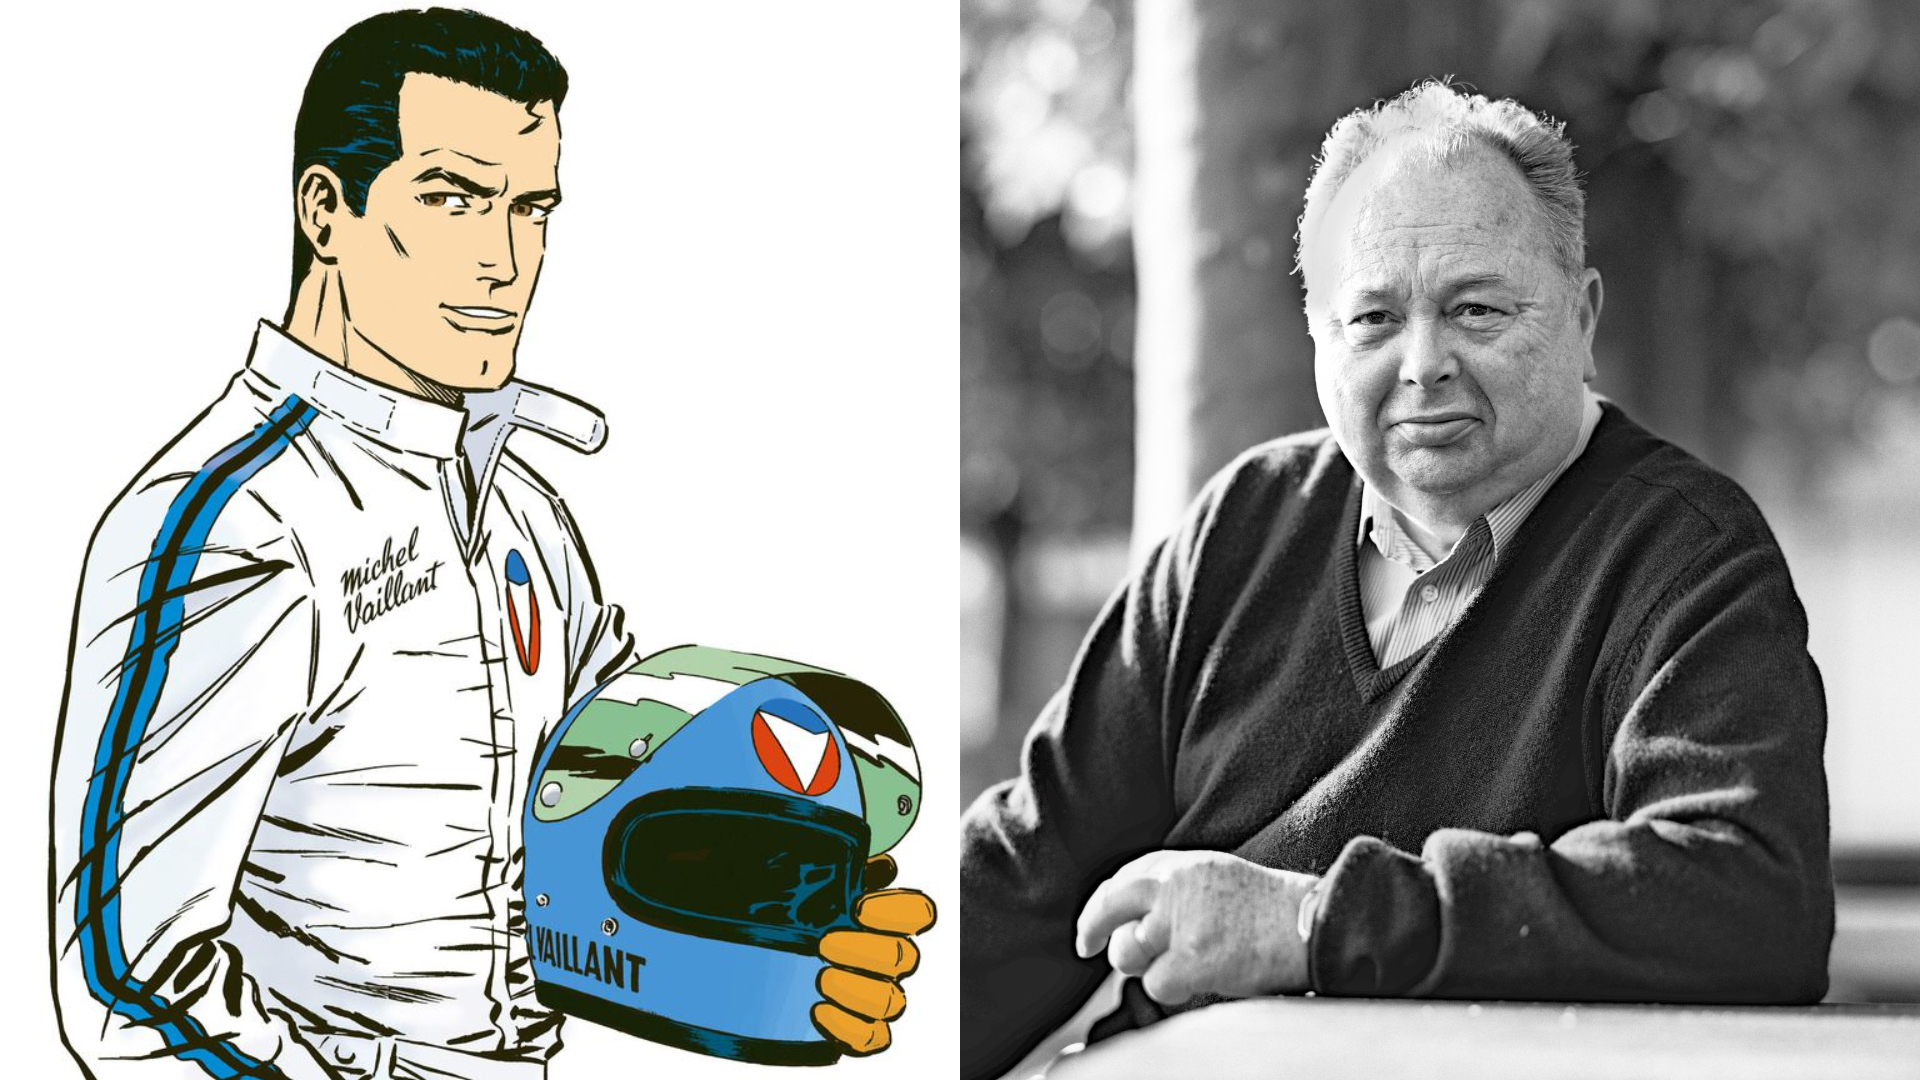 Quand Jean Graton racontait Michel Vaillant, «superstar du volant»